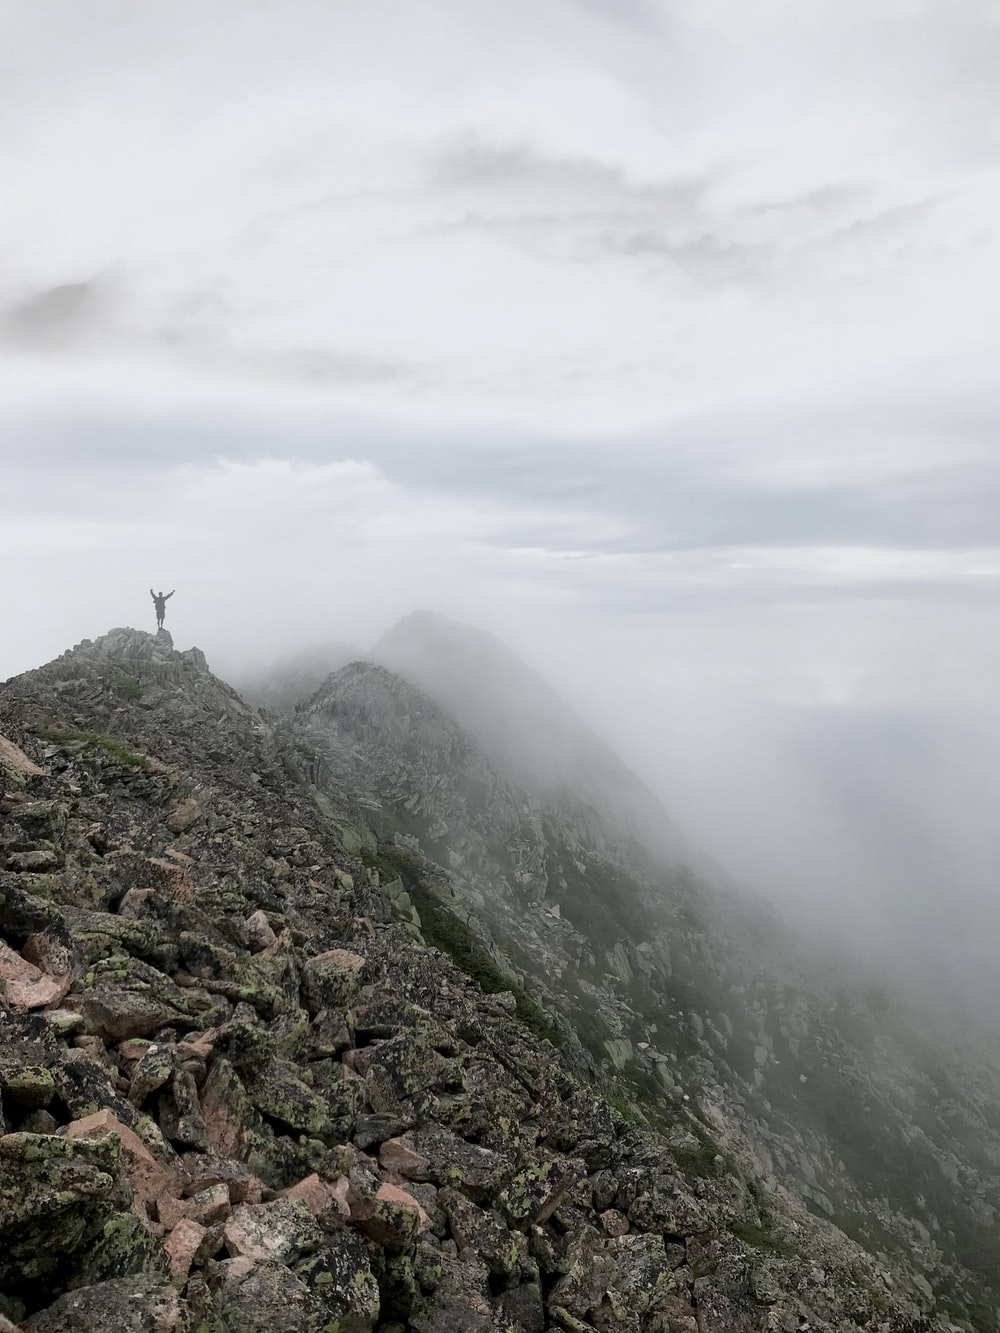 person standing on mountain summit with fog